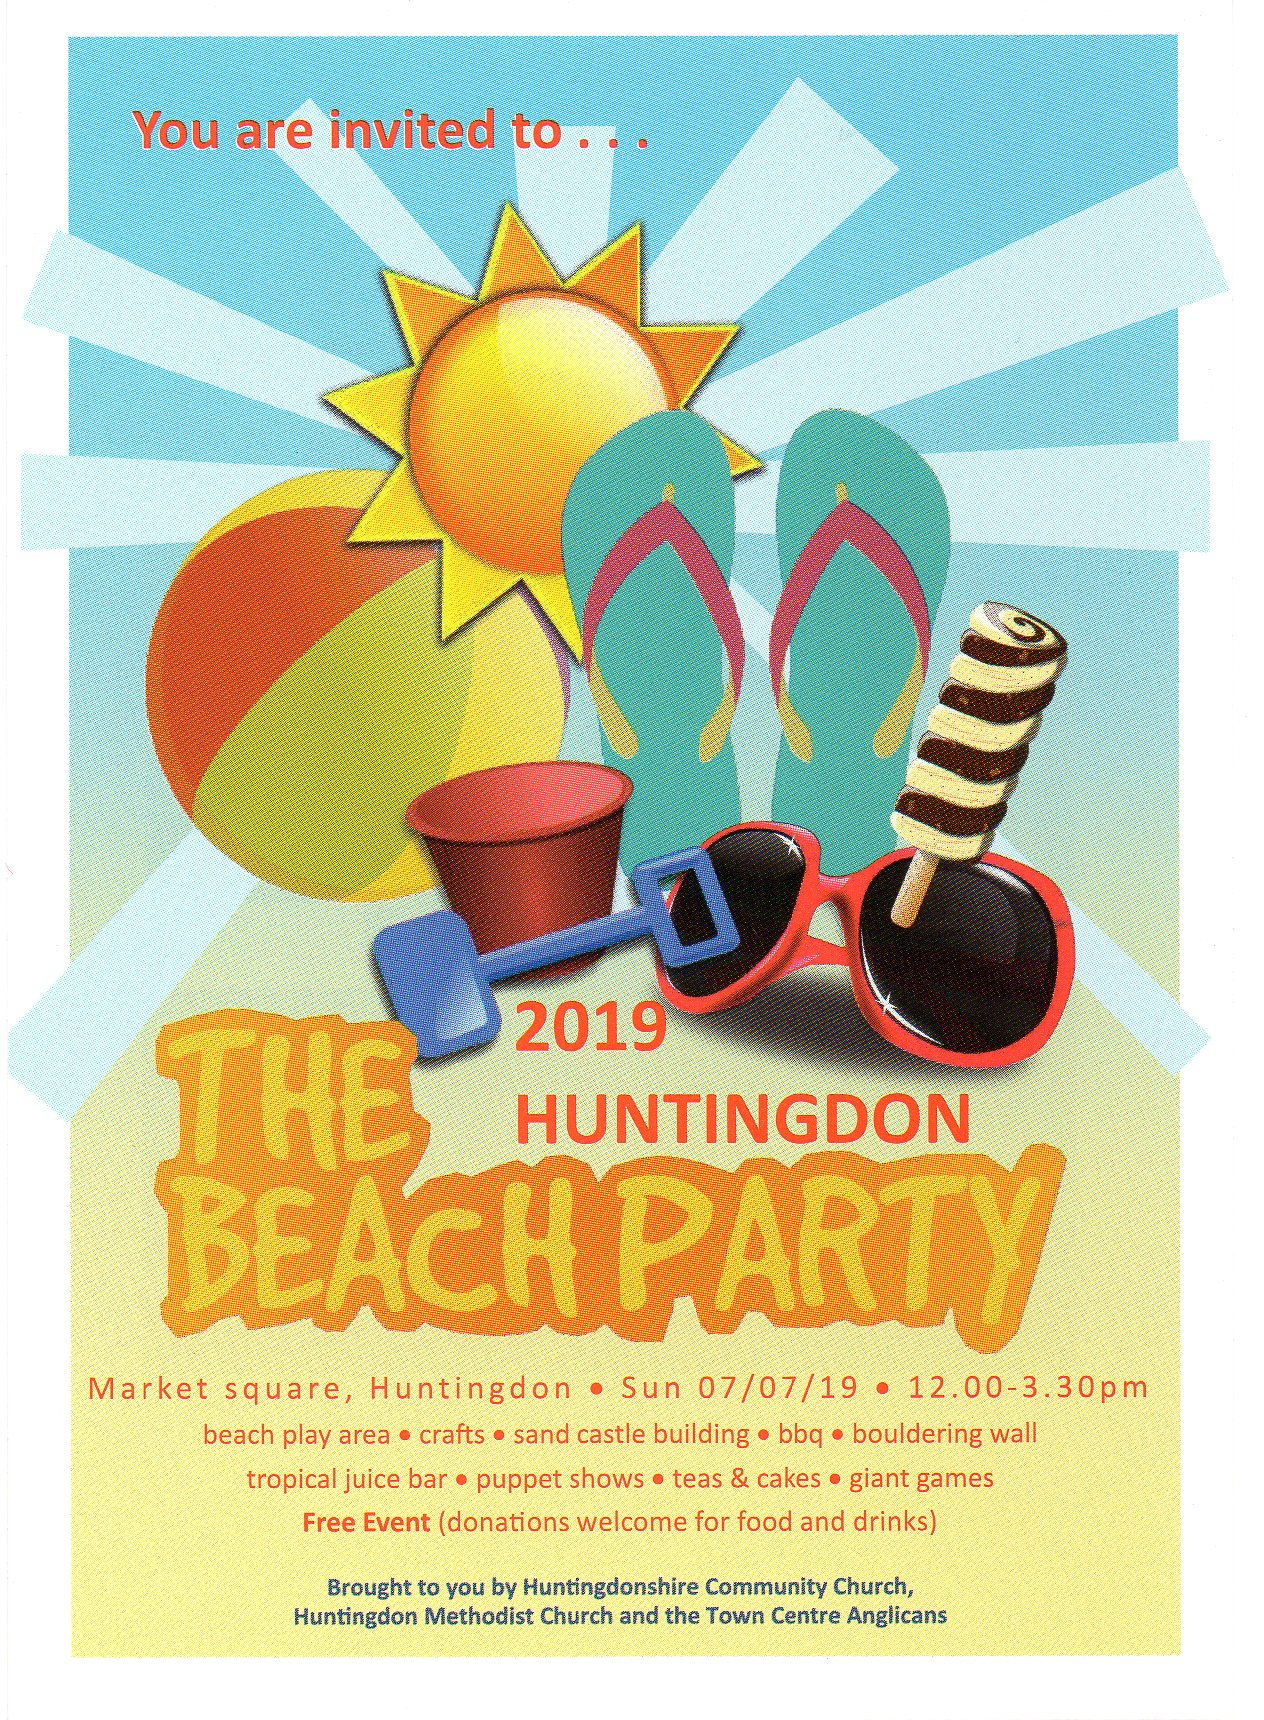 You are invited to the 2019 Huntingdon Beach Party.  Market Square, Huntingdon, Sunday 7/7/2019 12 - 3:30 pm.  Beach play area, crafts, sand castle building, BBQ, bouldering wall, tropical juice bar, puppet shows, teas & cakes, giant games.  Free event (donations welcome for food and drinks).  Brought to you by Huntingdonshire Community Church, Huntingdon Methodist Church and the Town Centre Angiicans.